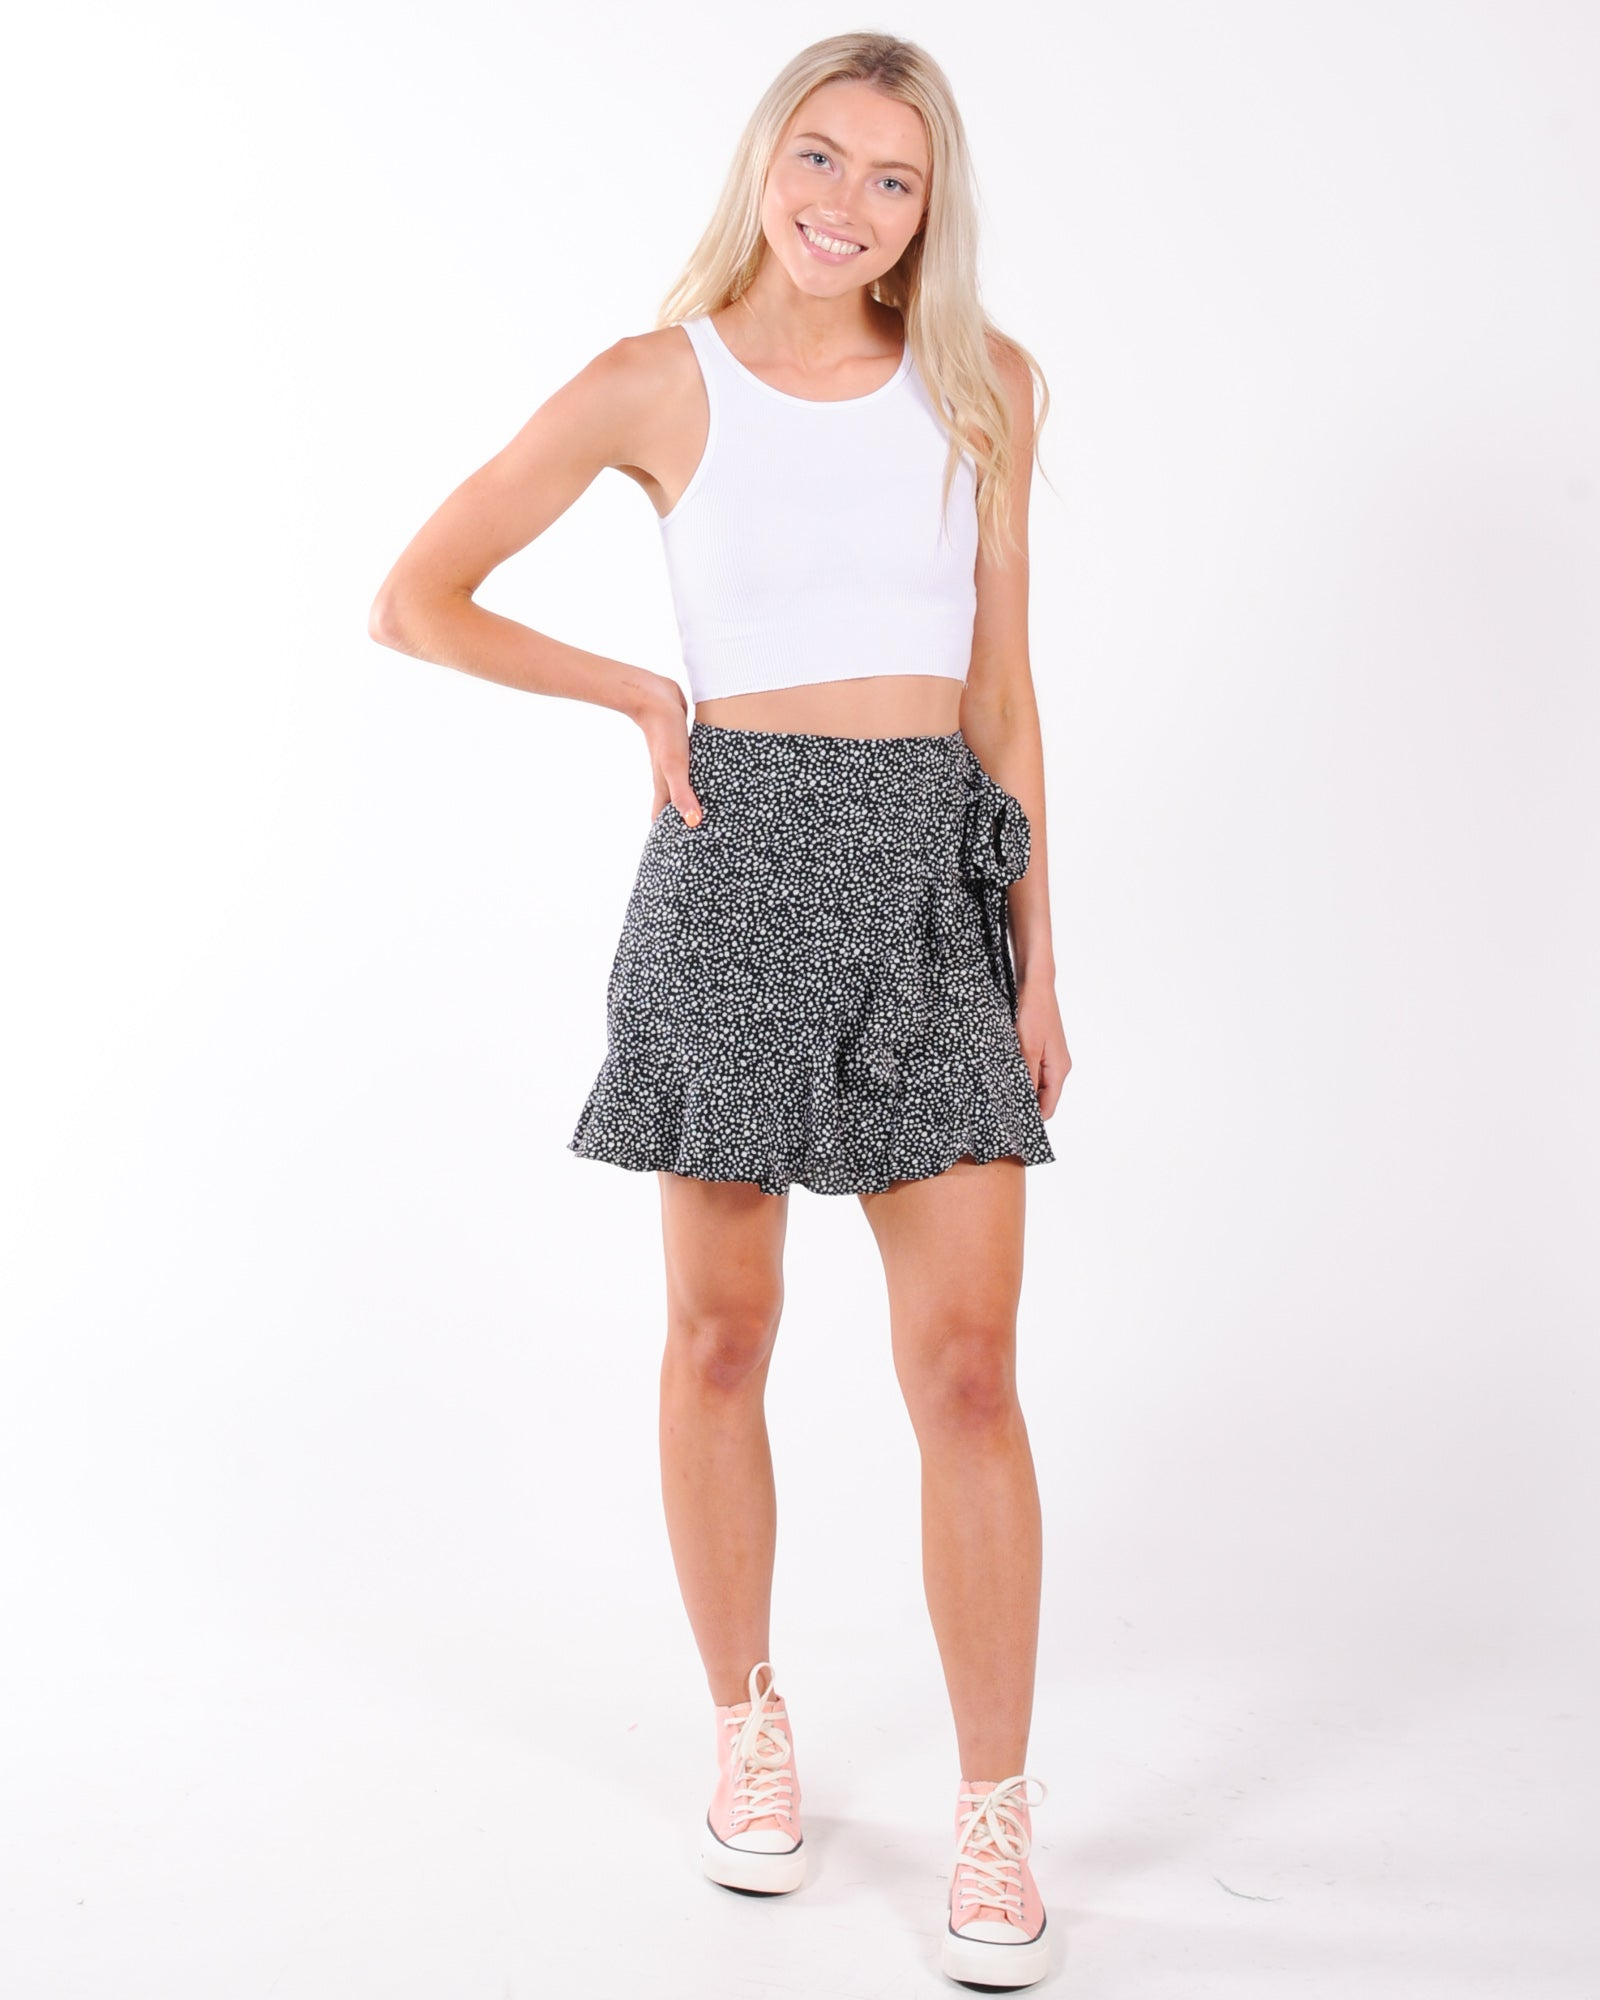 Sun Bliss Wrap Skirt - Black